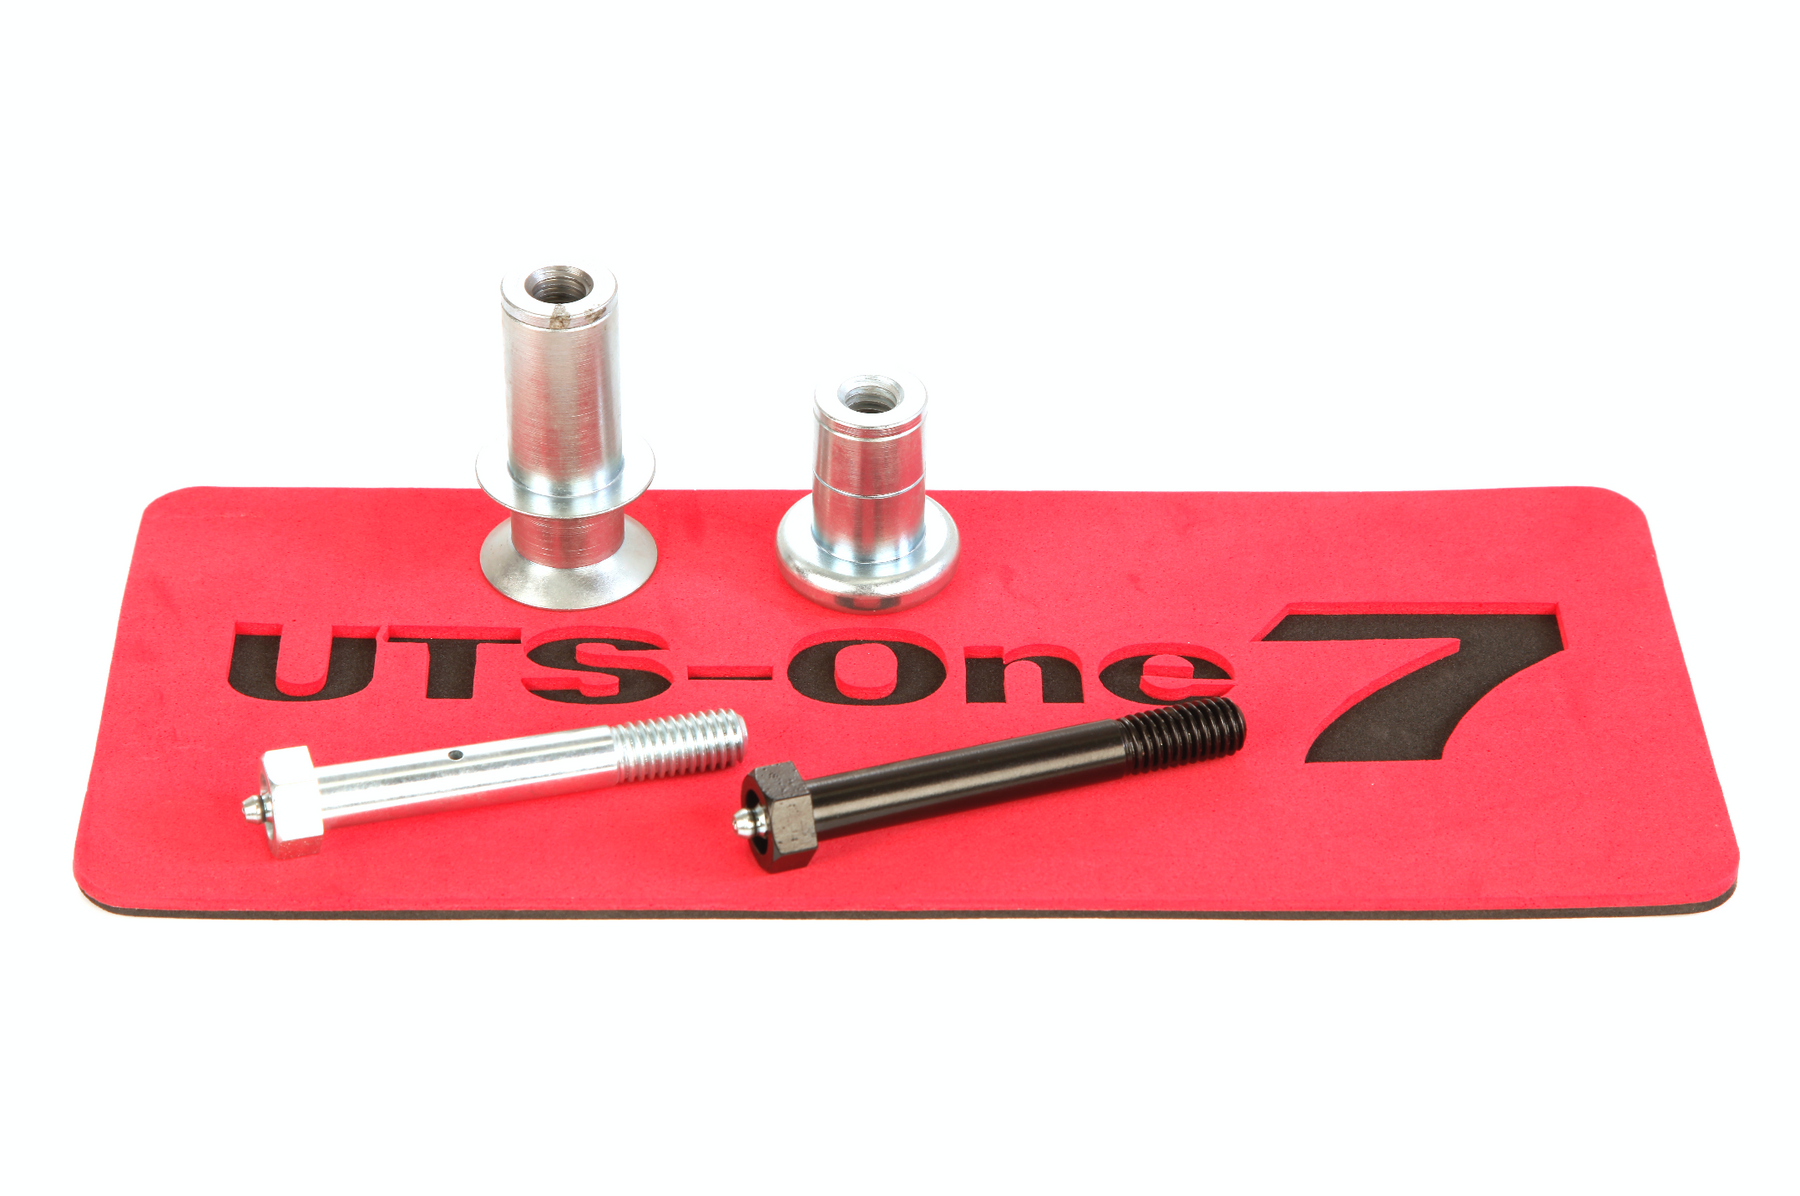 Castor Locators For The UTS-One7 (Non-Suspension) - International Tool Company